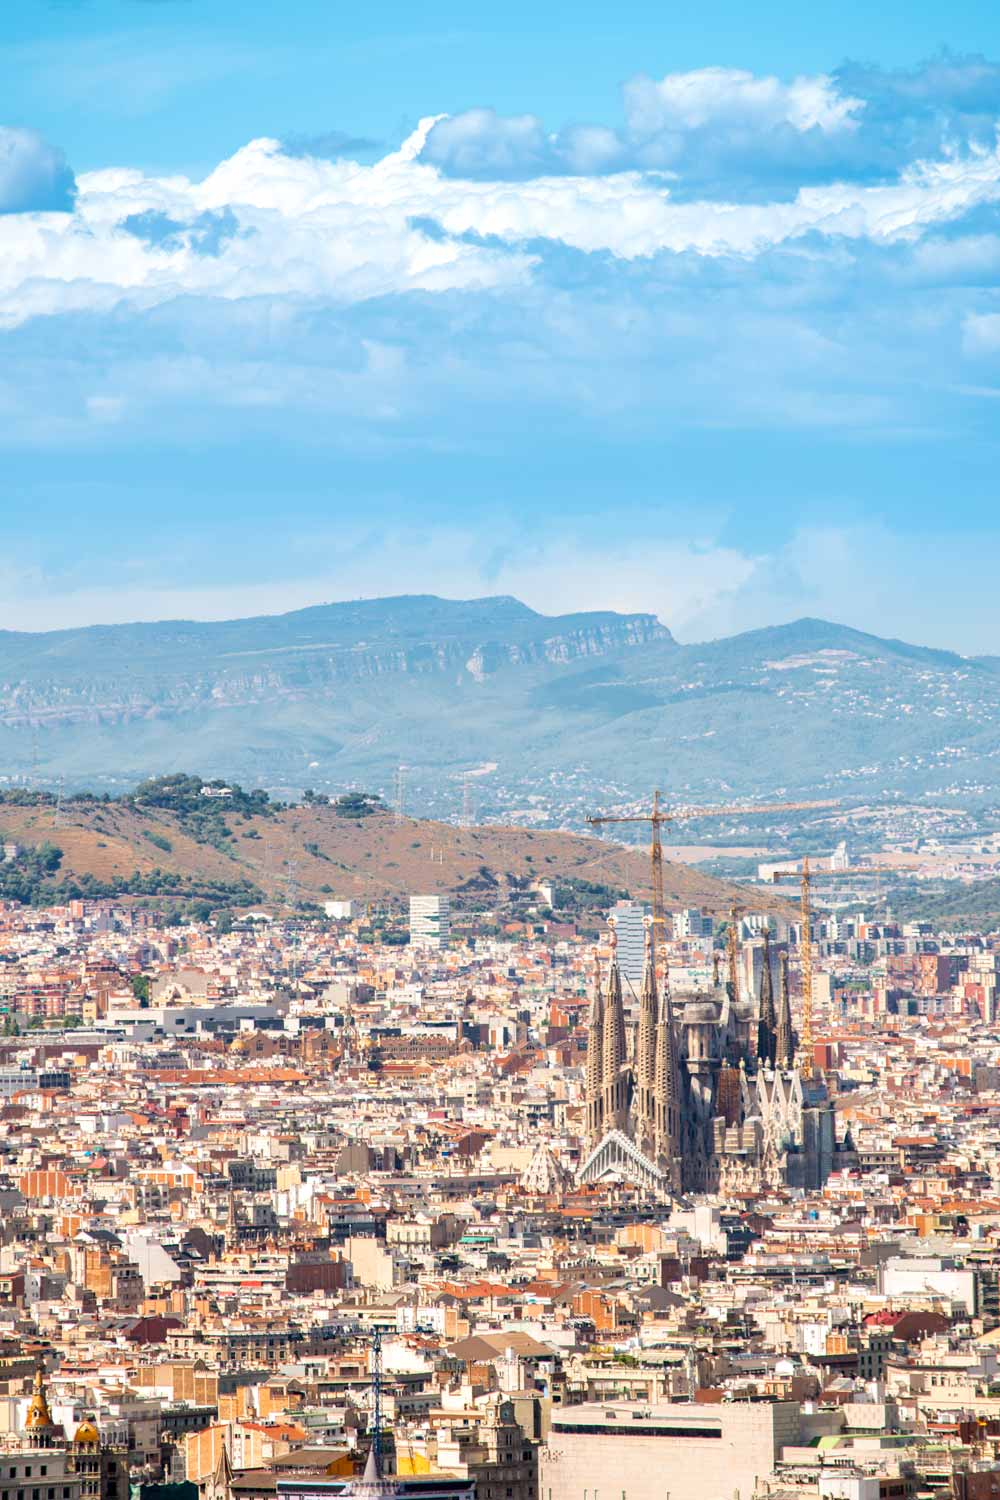 facts about barcelona - escaltors on the open